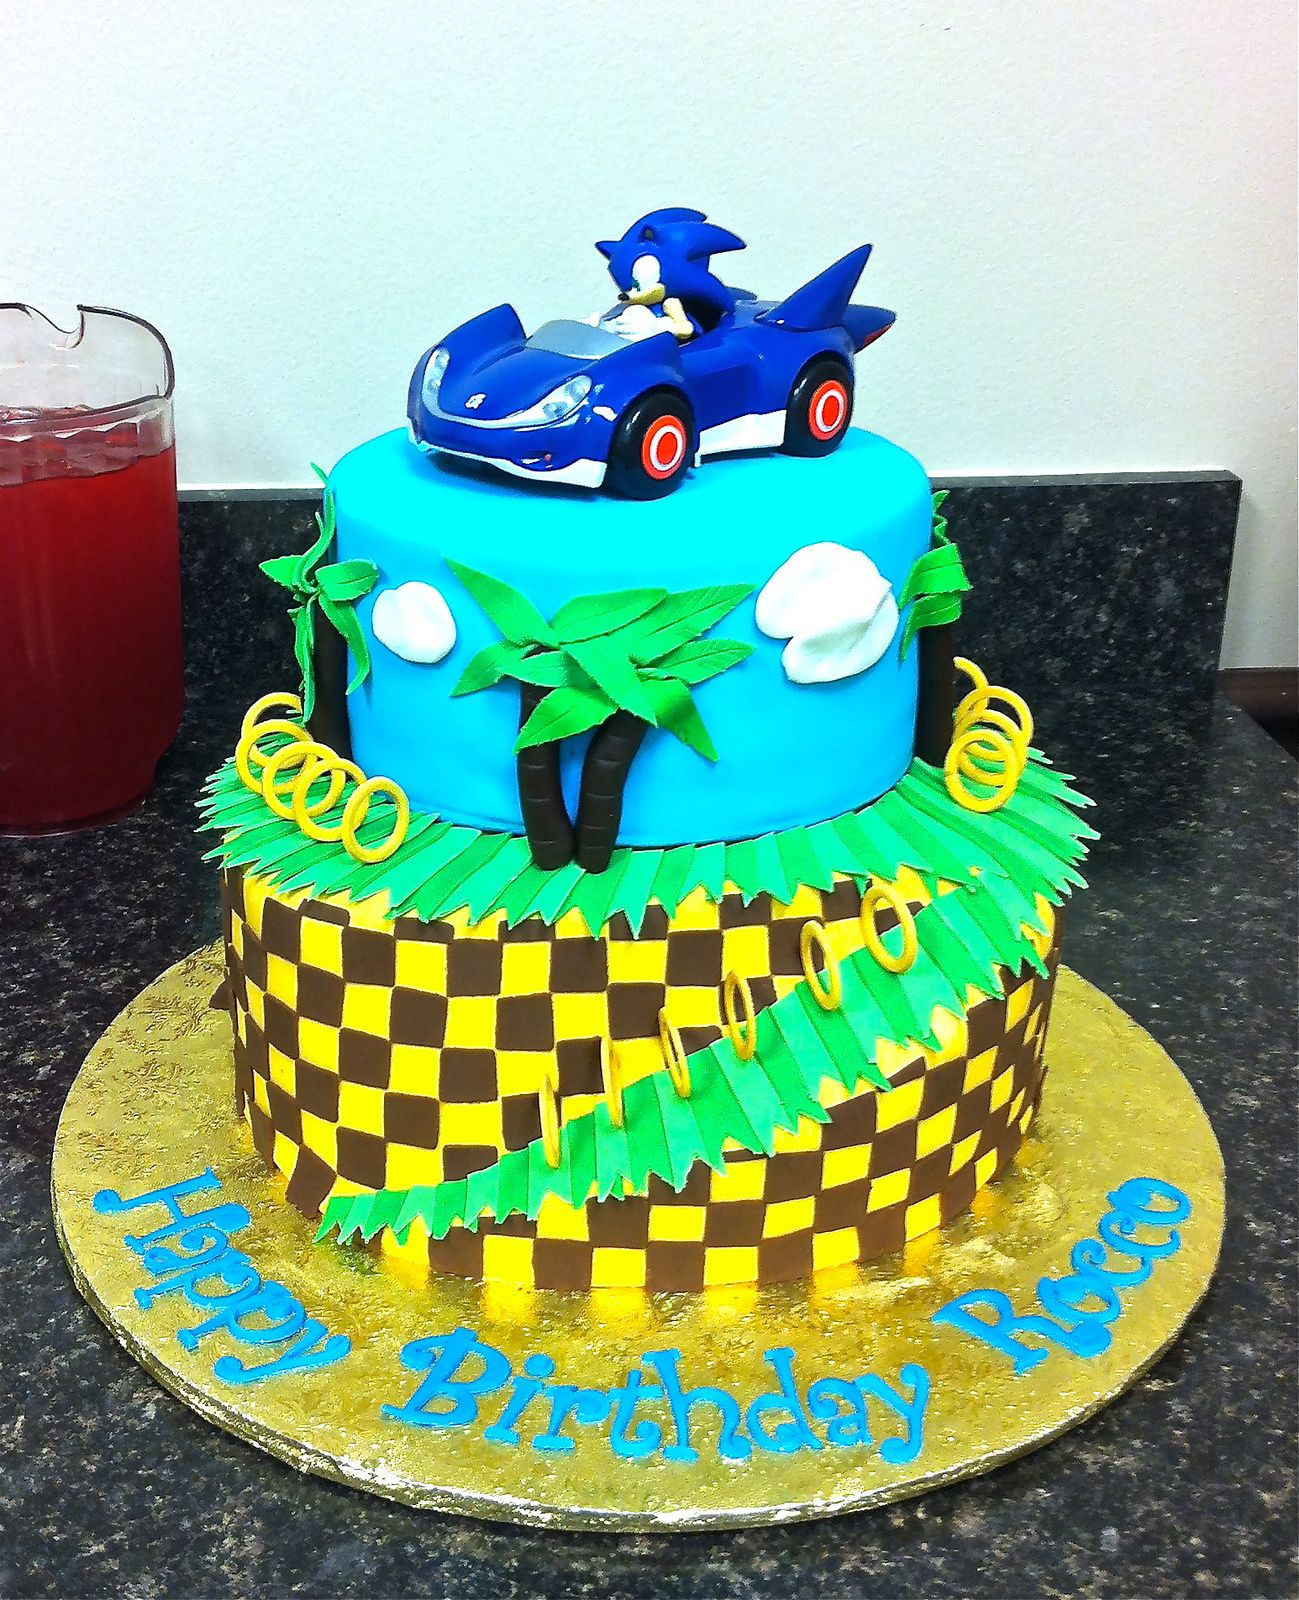 Sonic The Hedgehog Cake Its A Party Pinterest Hedgehog Cake